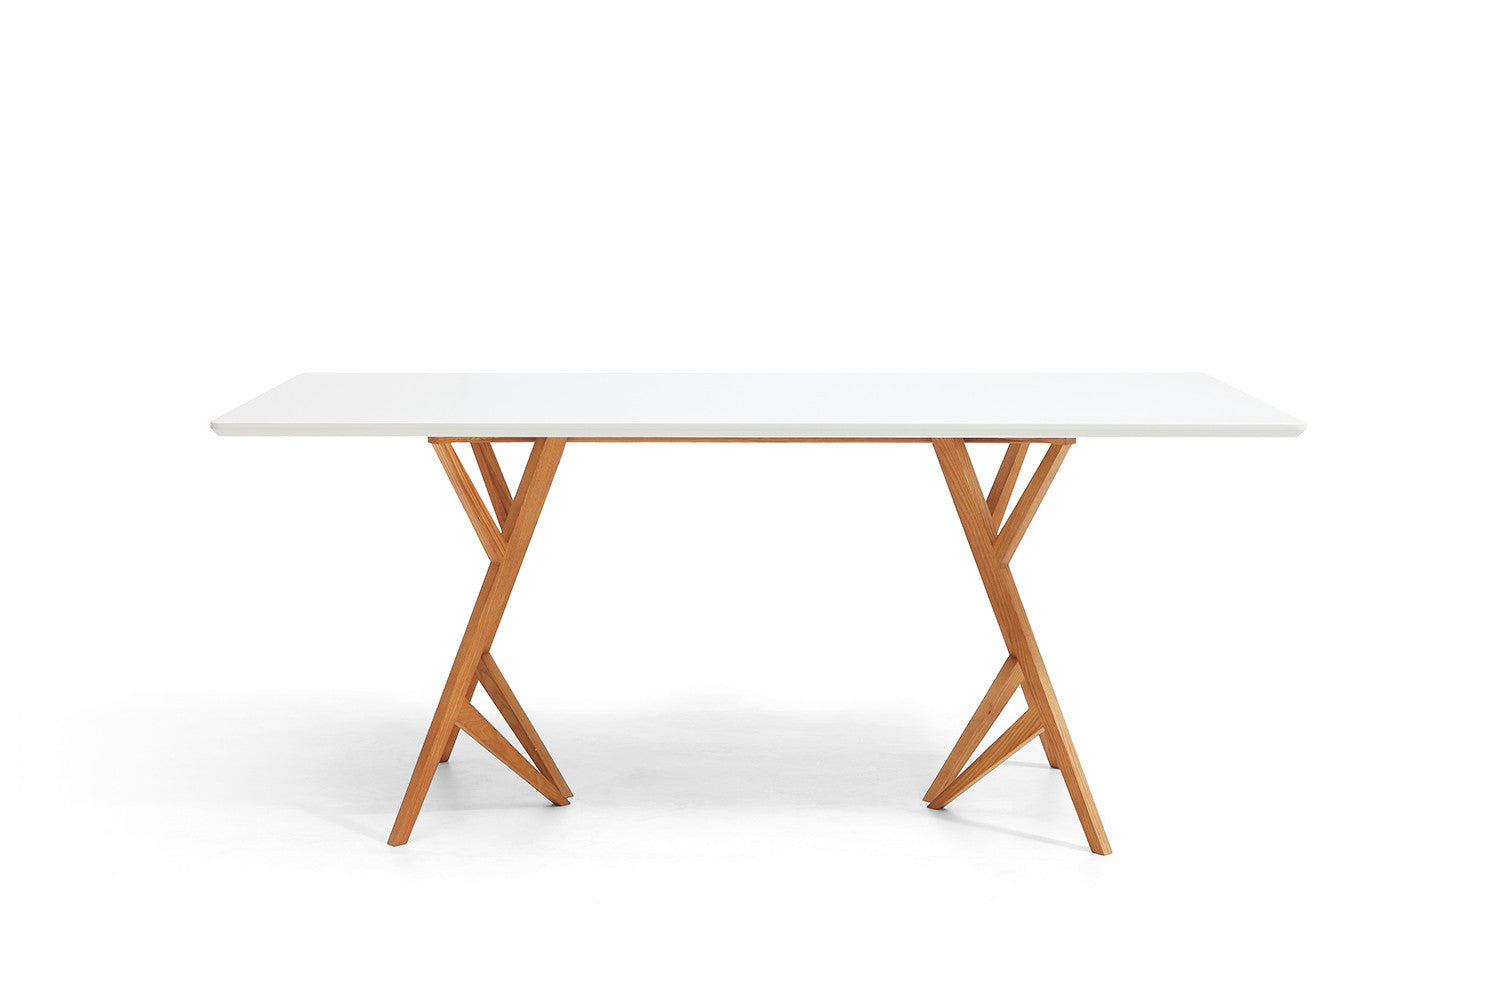 Table de salle manger design scandinave vispa dewarens - Table salle a manger blanche design ...